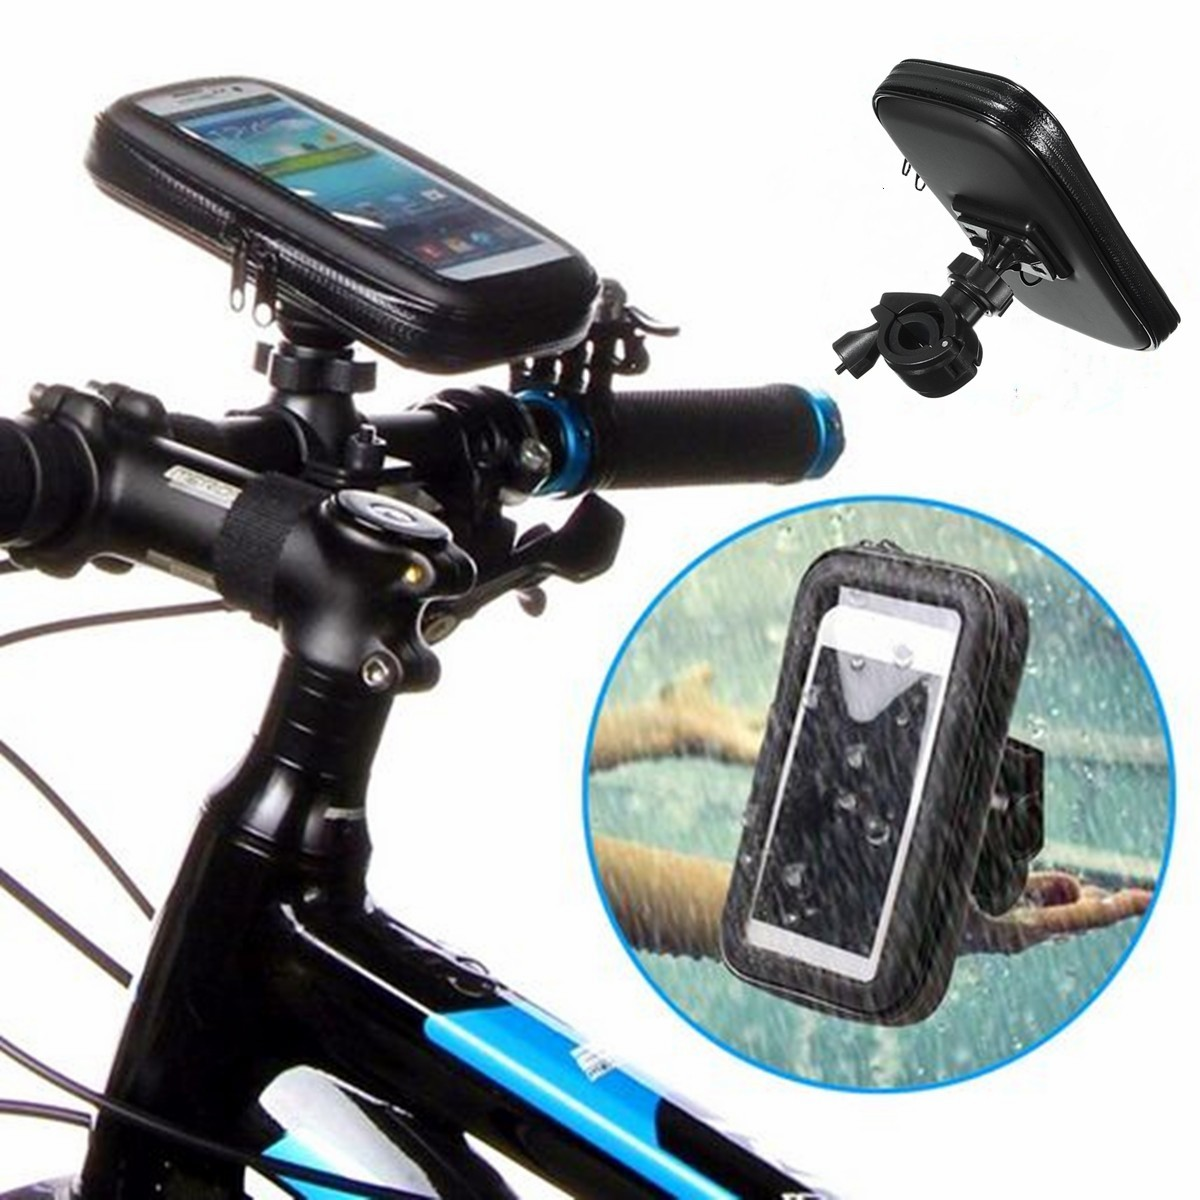 Buy Universal Waterproof Motorbike Motorcycle Case Bike Bag Phone Mount Holder for iPhone Samsung GPS